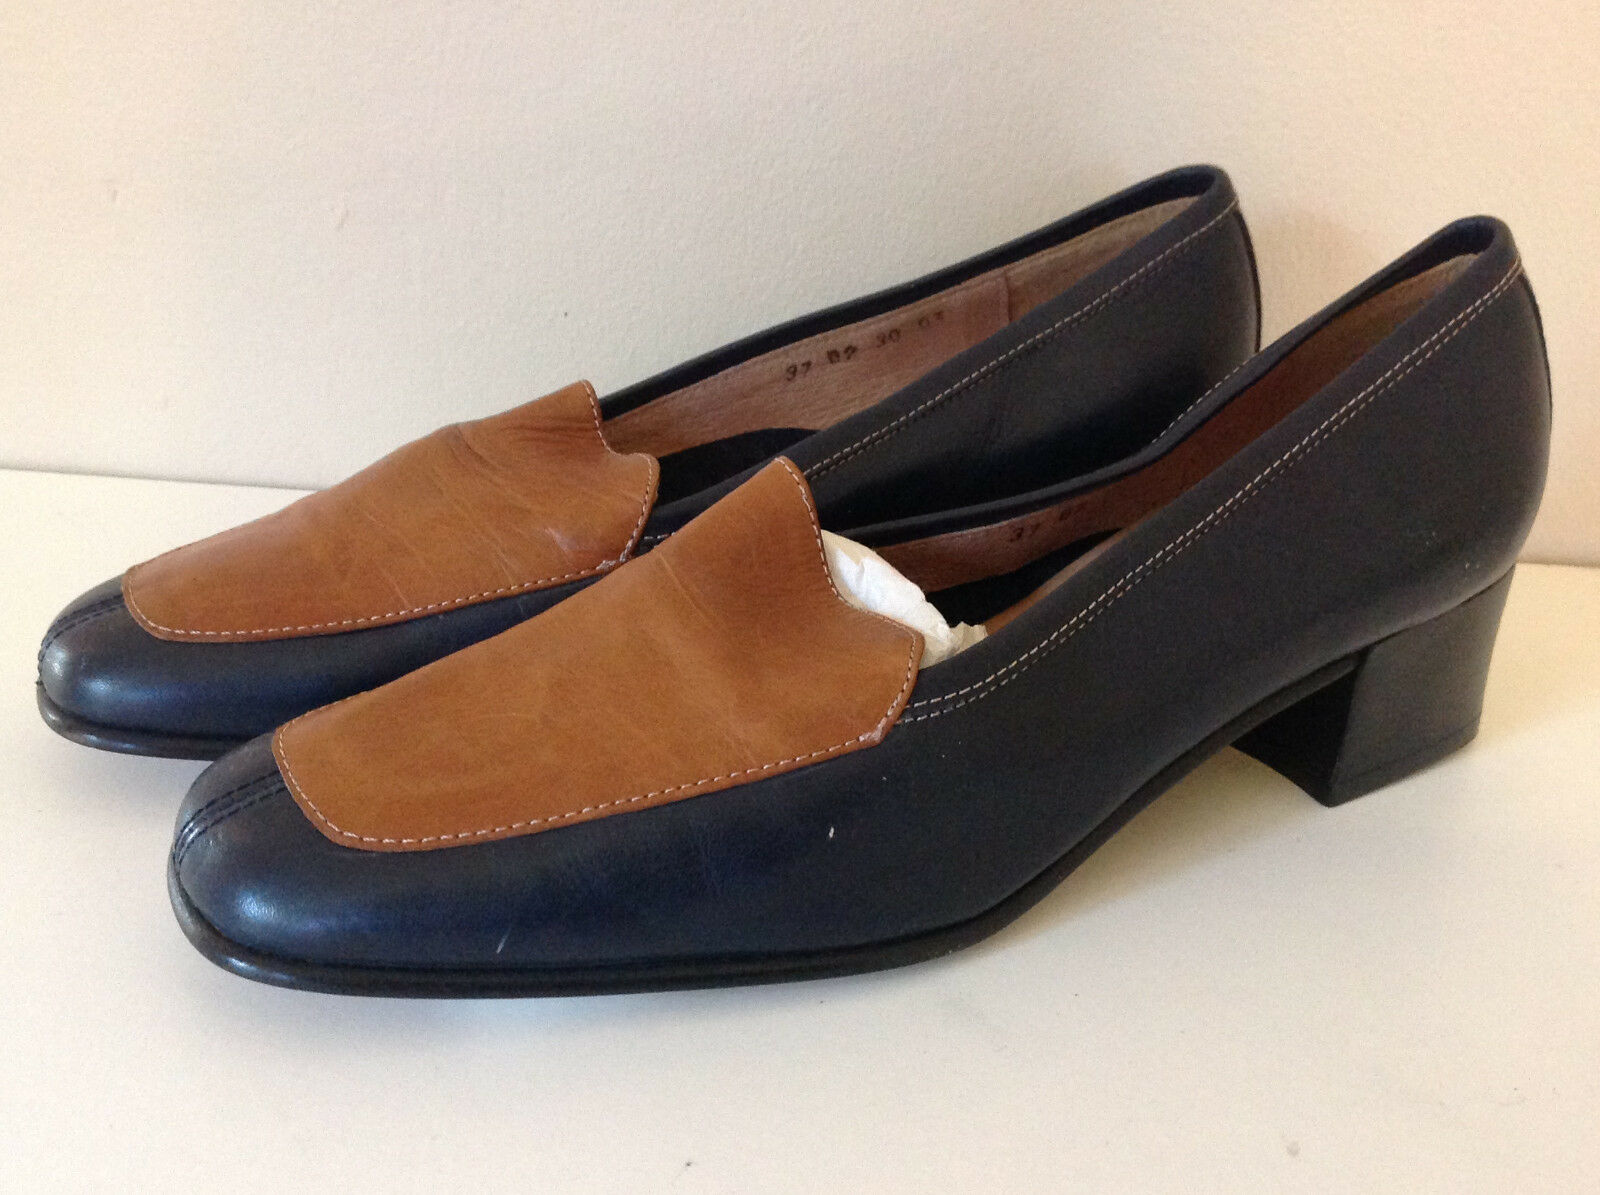 NEW SIMOMEN MOGUER navy & tan soft ALL LEATHER low heel shoes 37 UK 4